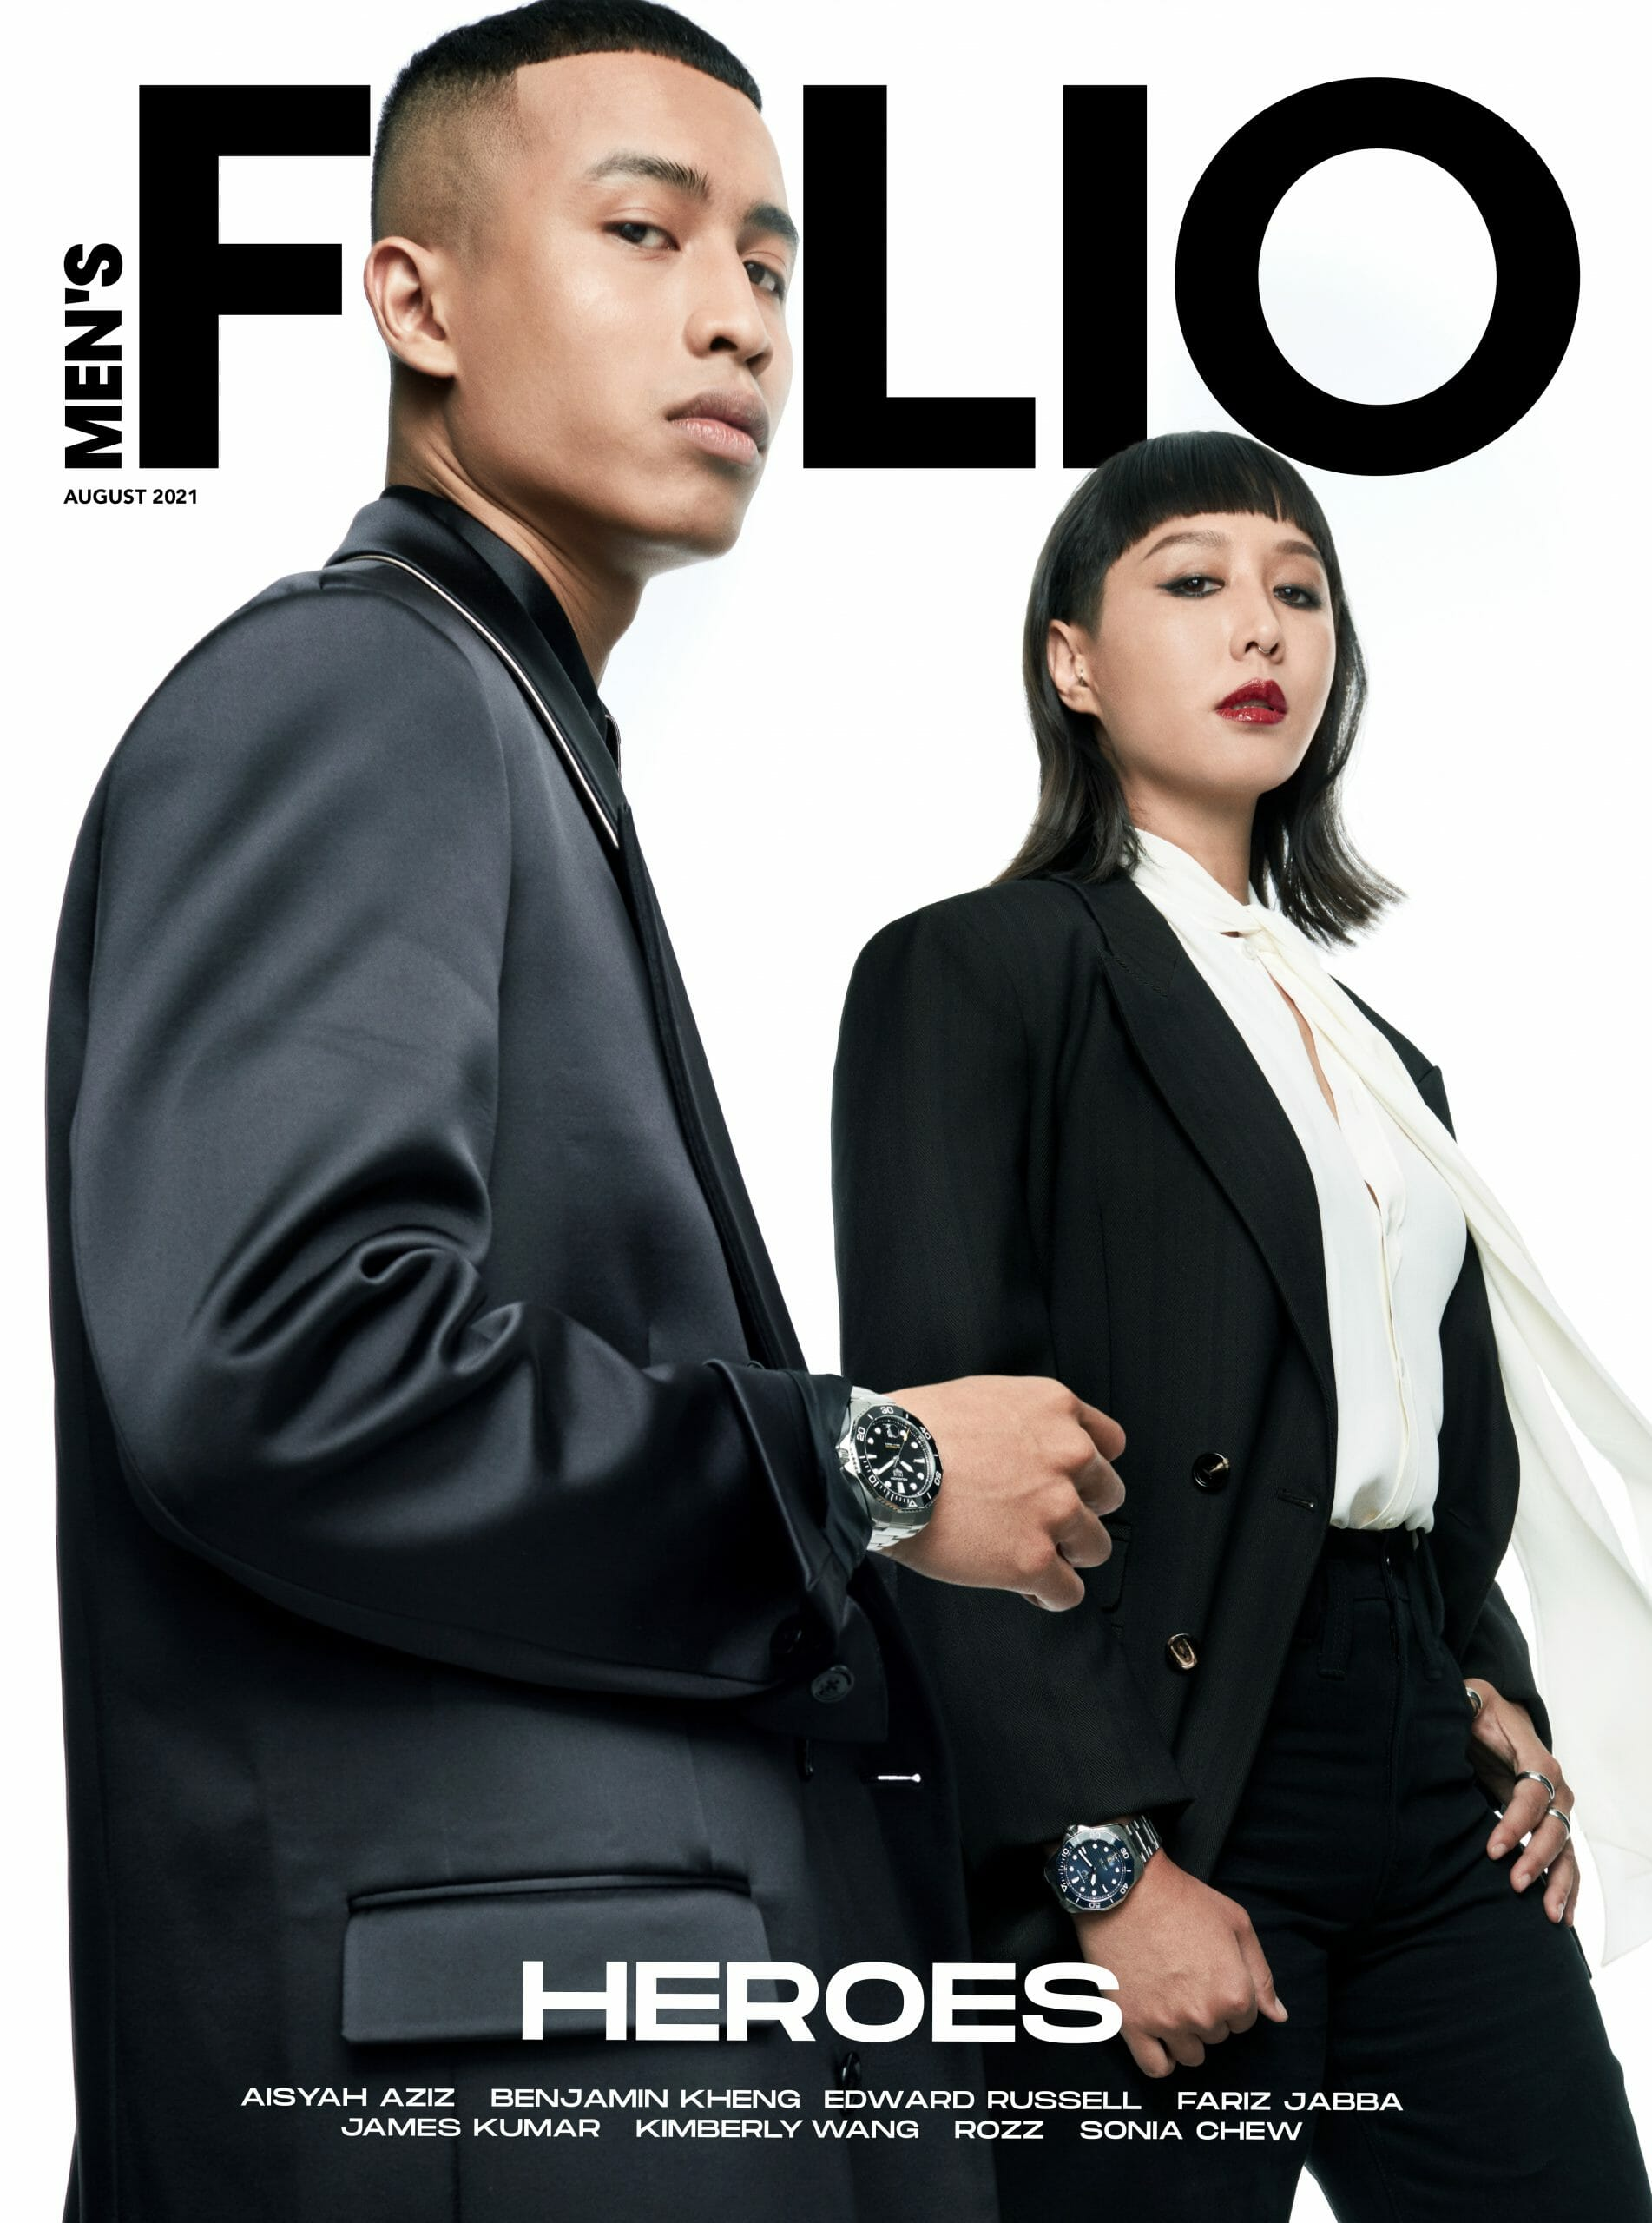 Presenting Fariz Jabba and Rozz, our August '21 Cover Stars